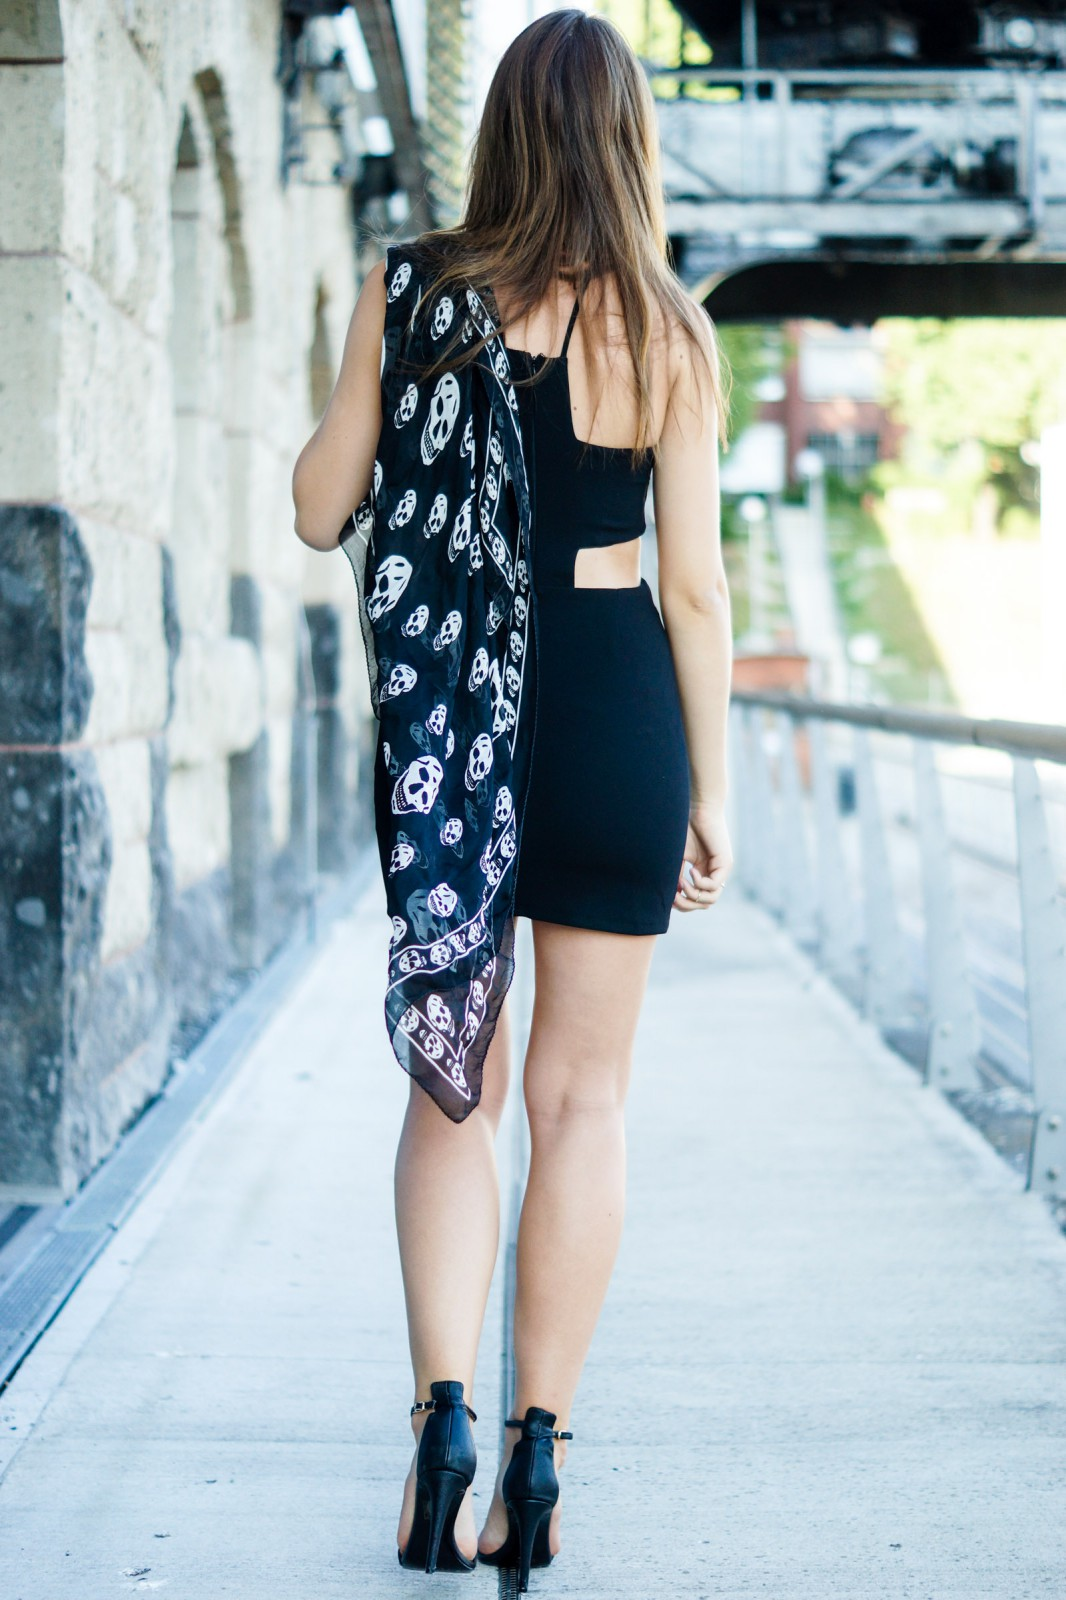 Scarf and Dress Outfit